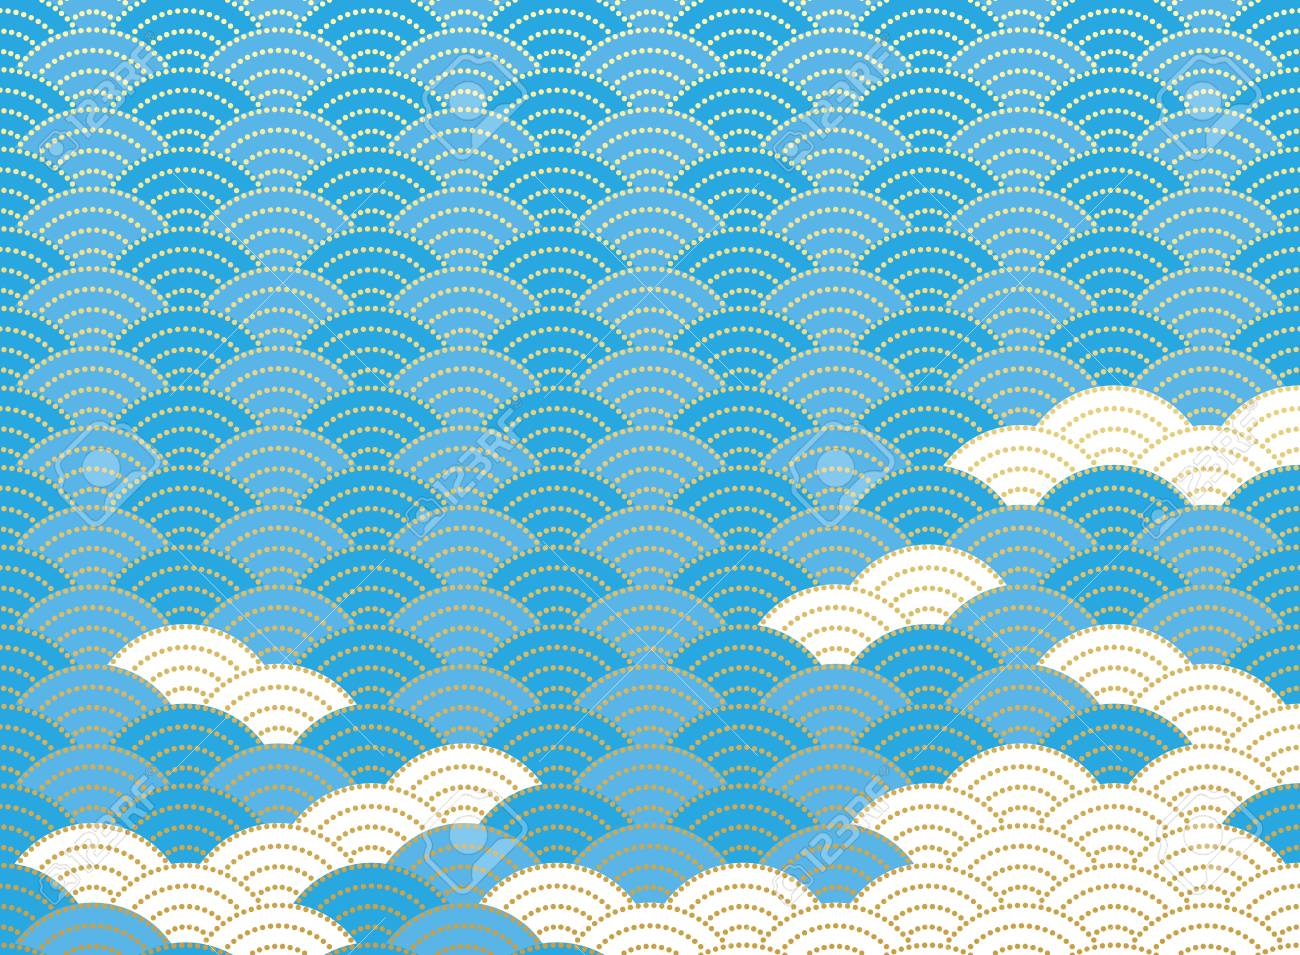 Qinghai Wave Pattern Japanese Background Material Royalty Free Cliparts Vectors And Stock Illustration Image 92160172